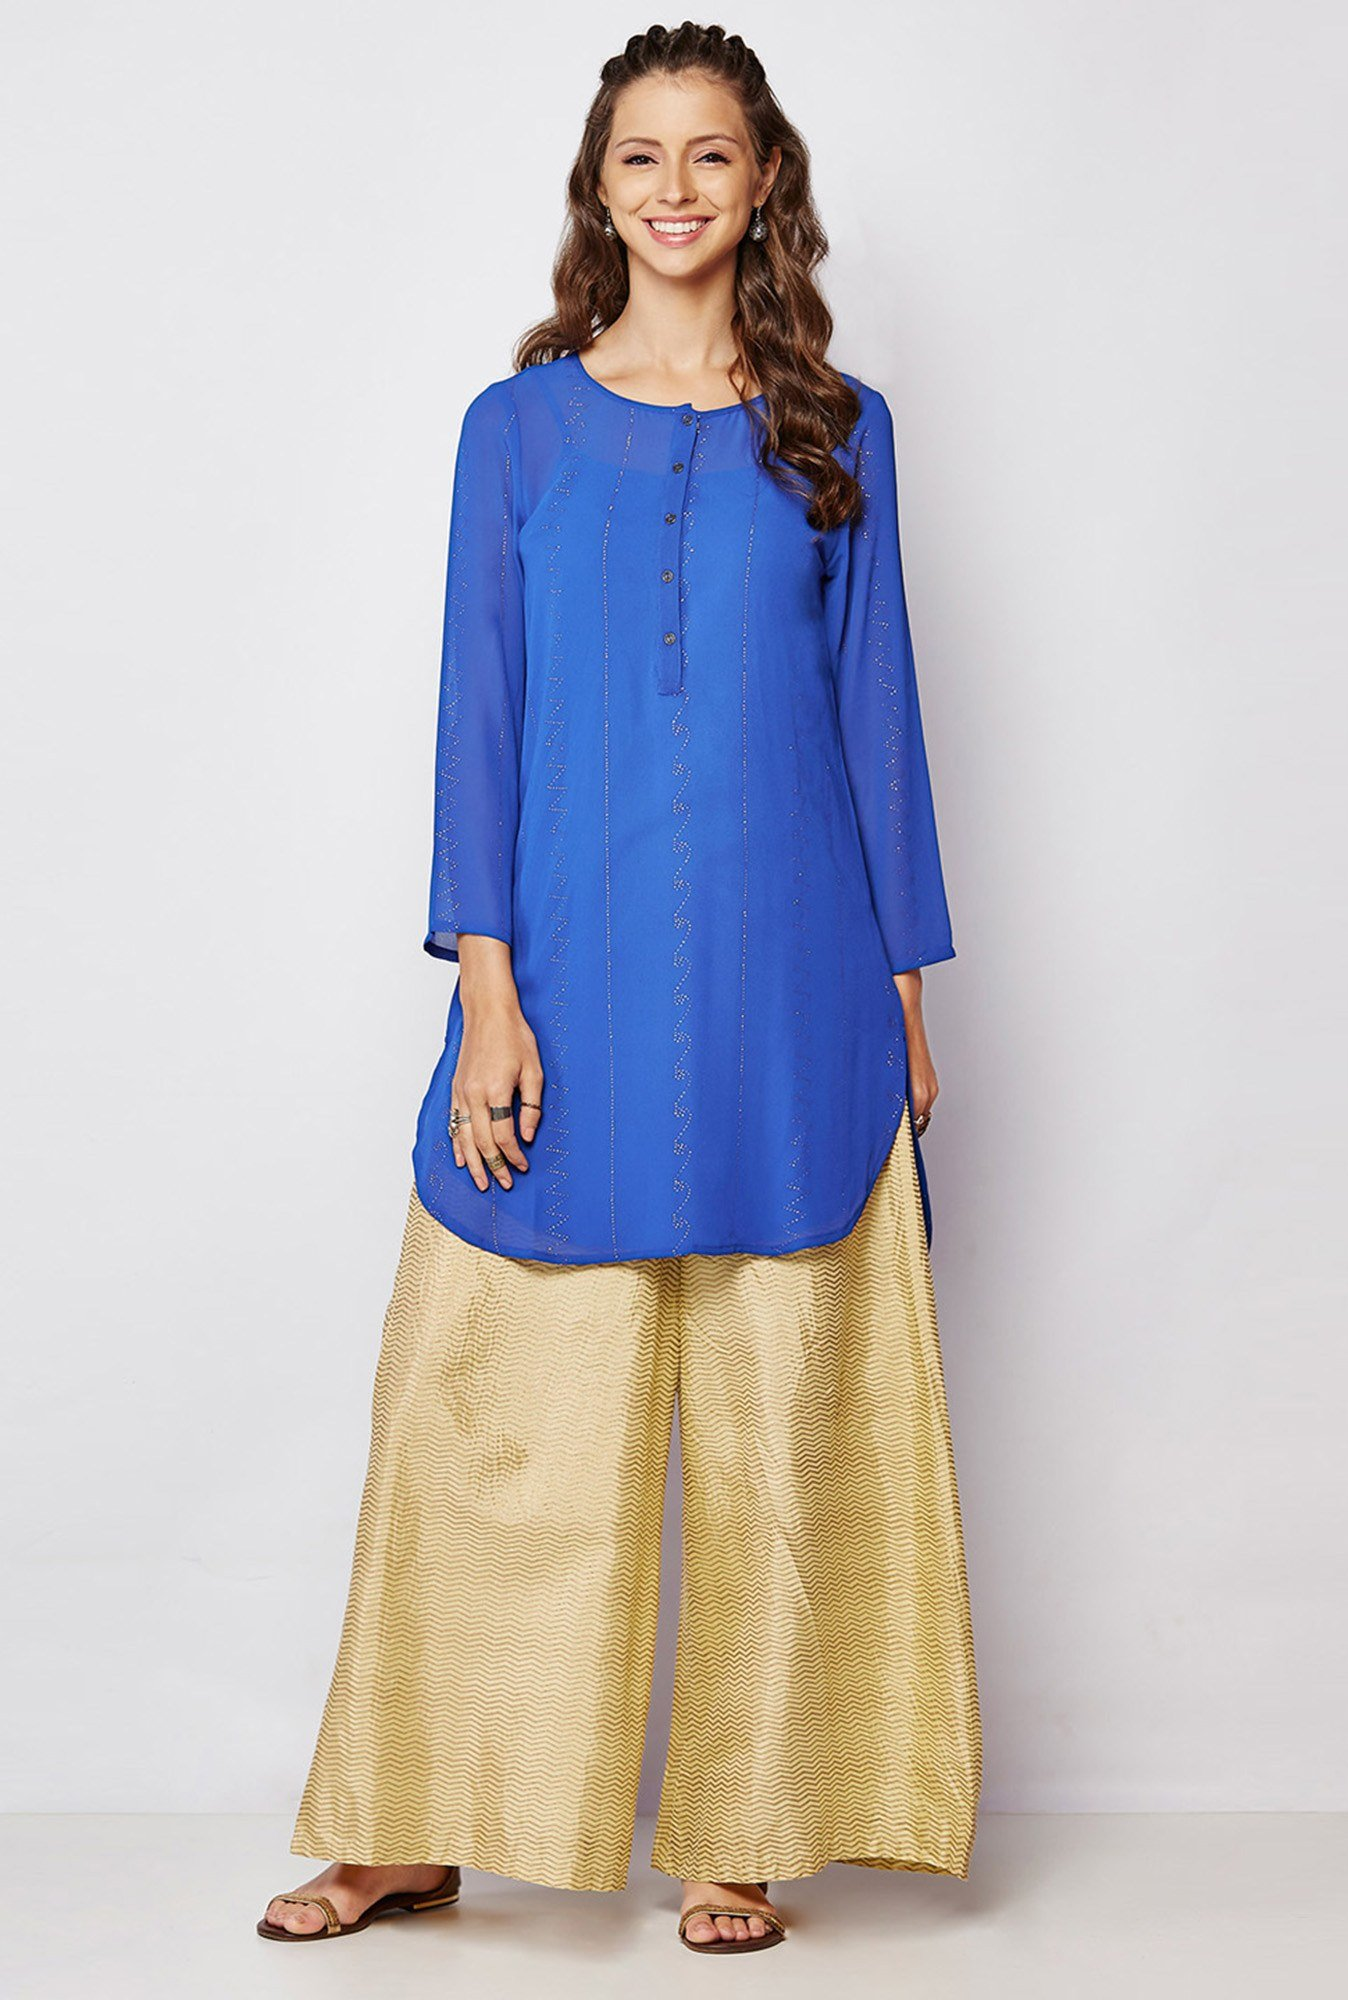 Global Desi Blue Embellished Kurti